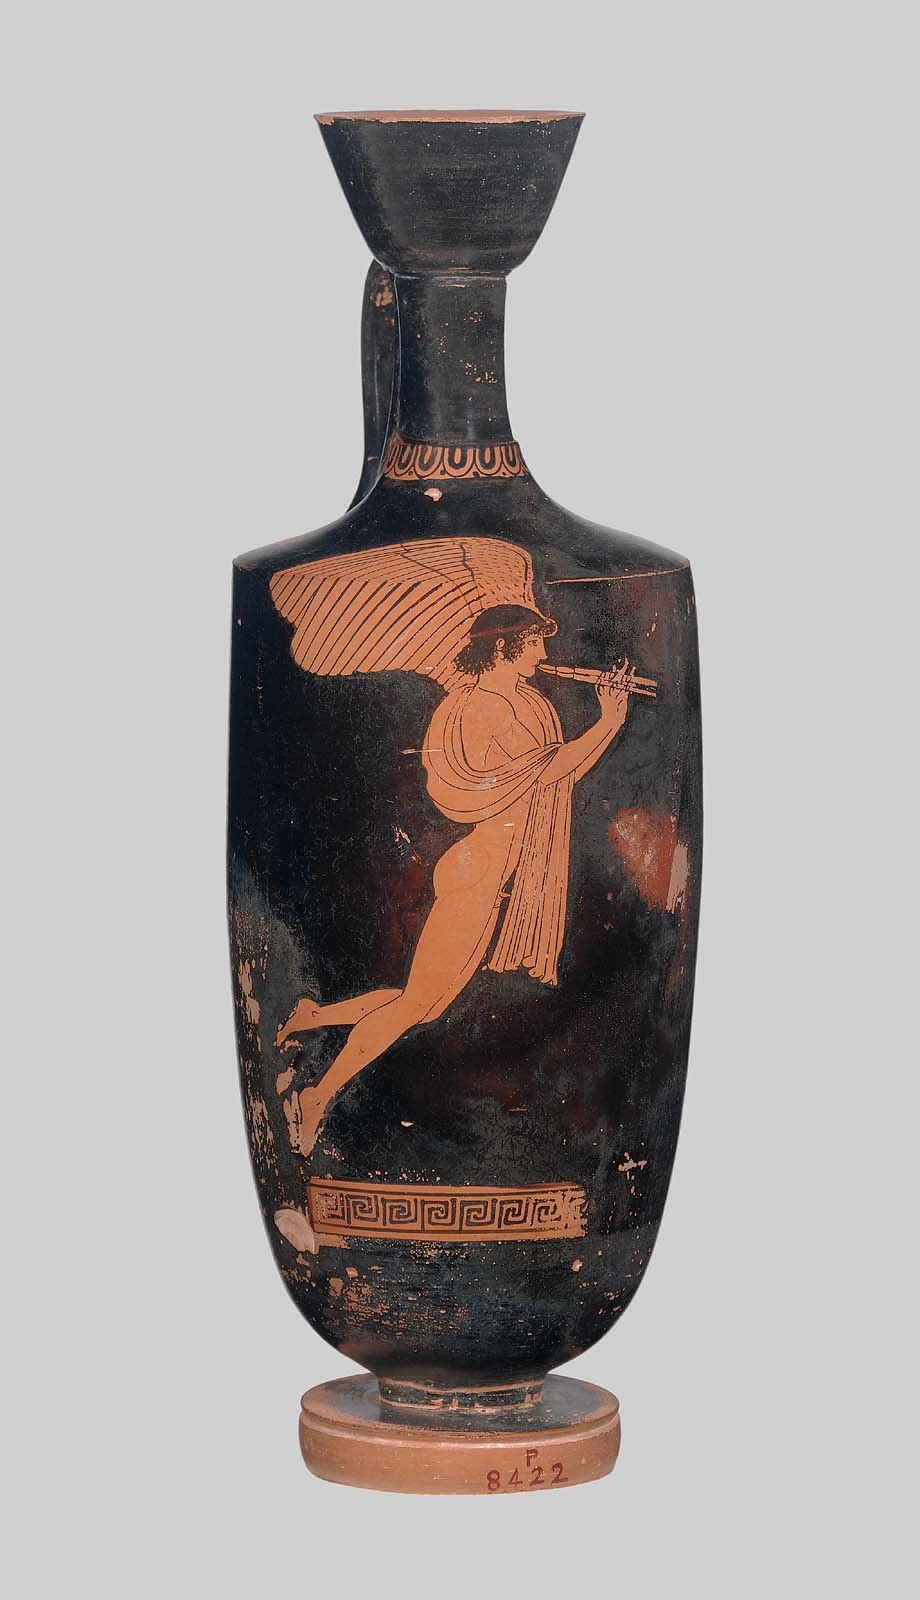 Oil Flask showing Eros as he plays the  aulos